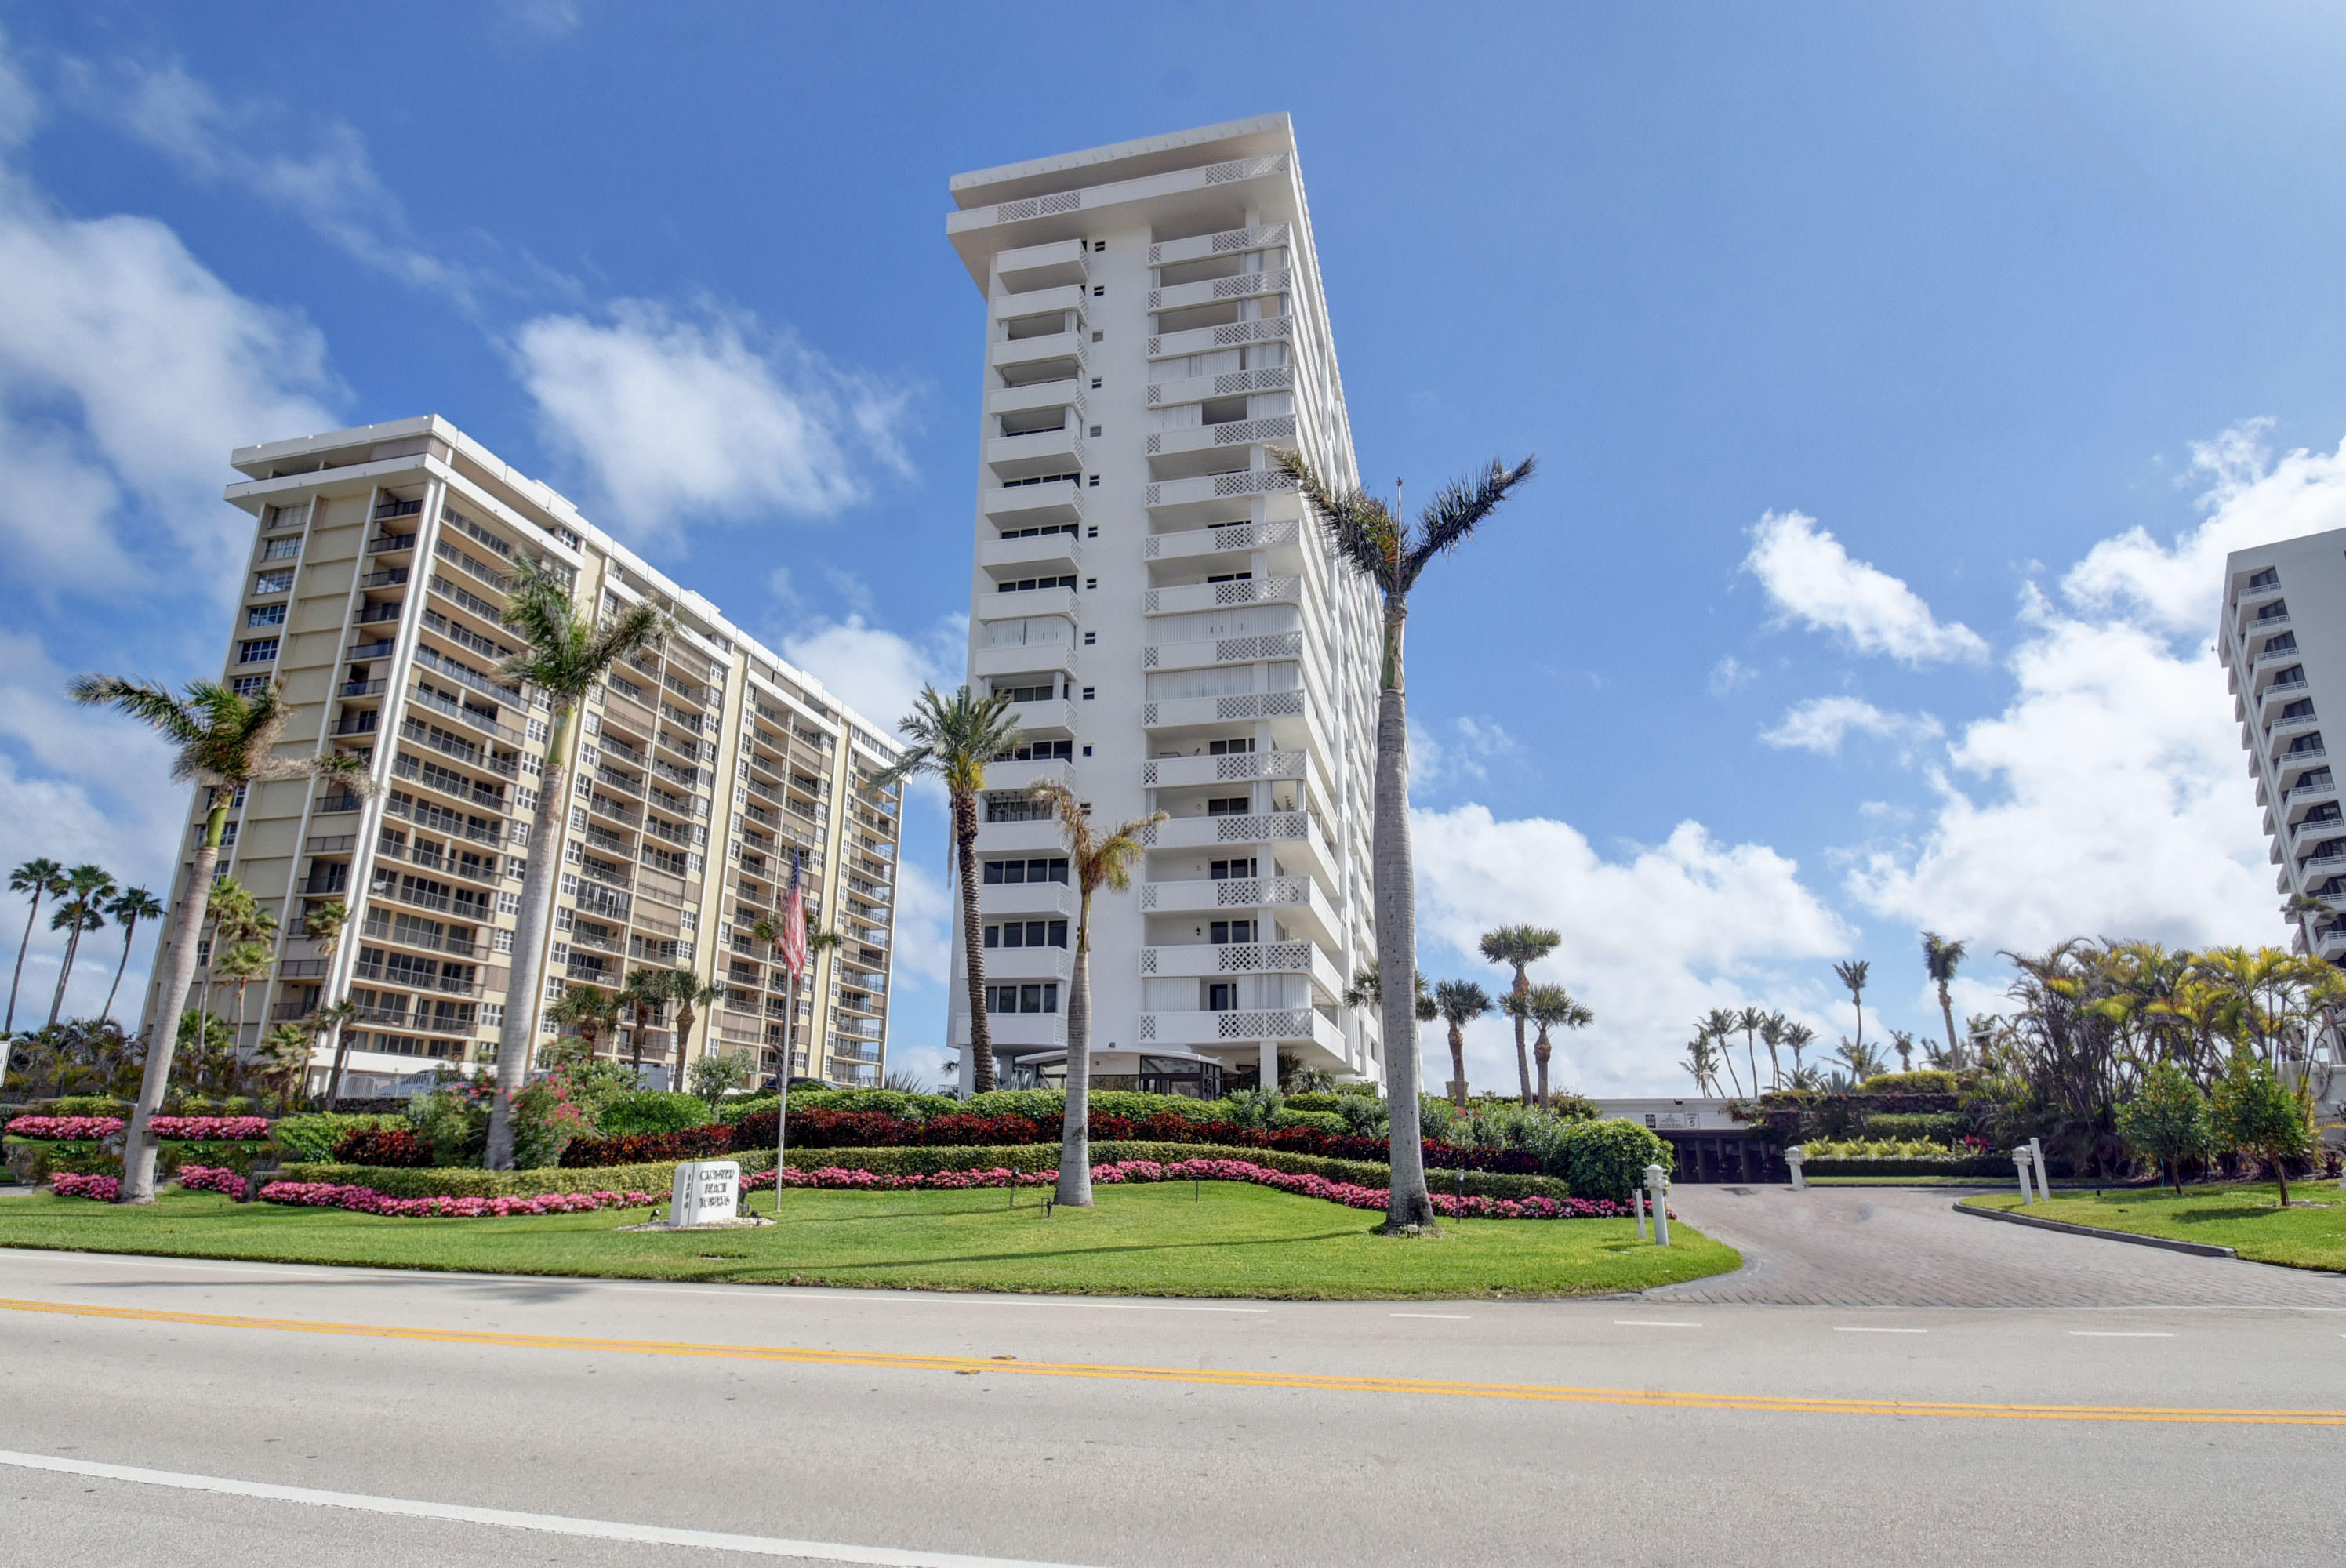 Home for sale in CLOISTER BEACH TOWERS CONDO Boca Raton Florida